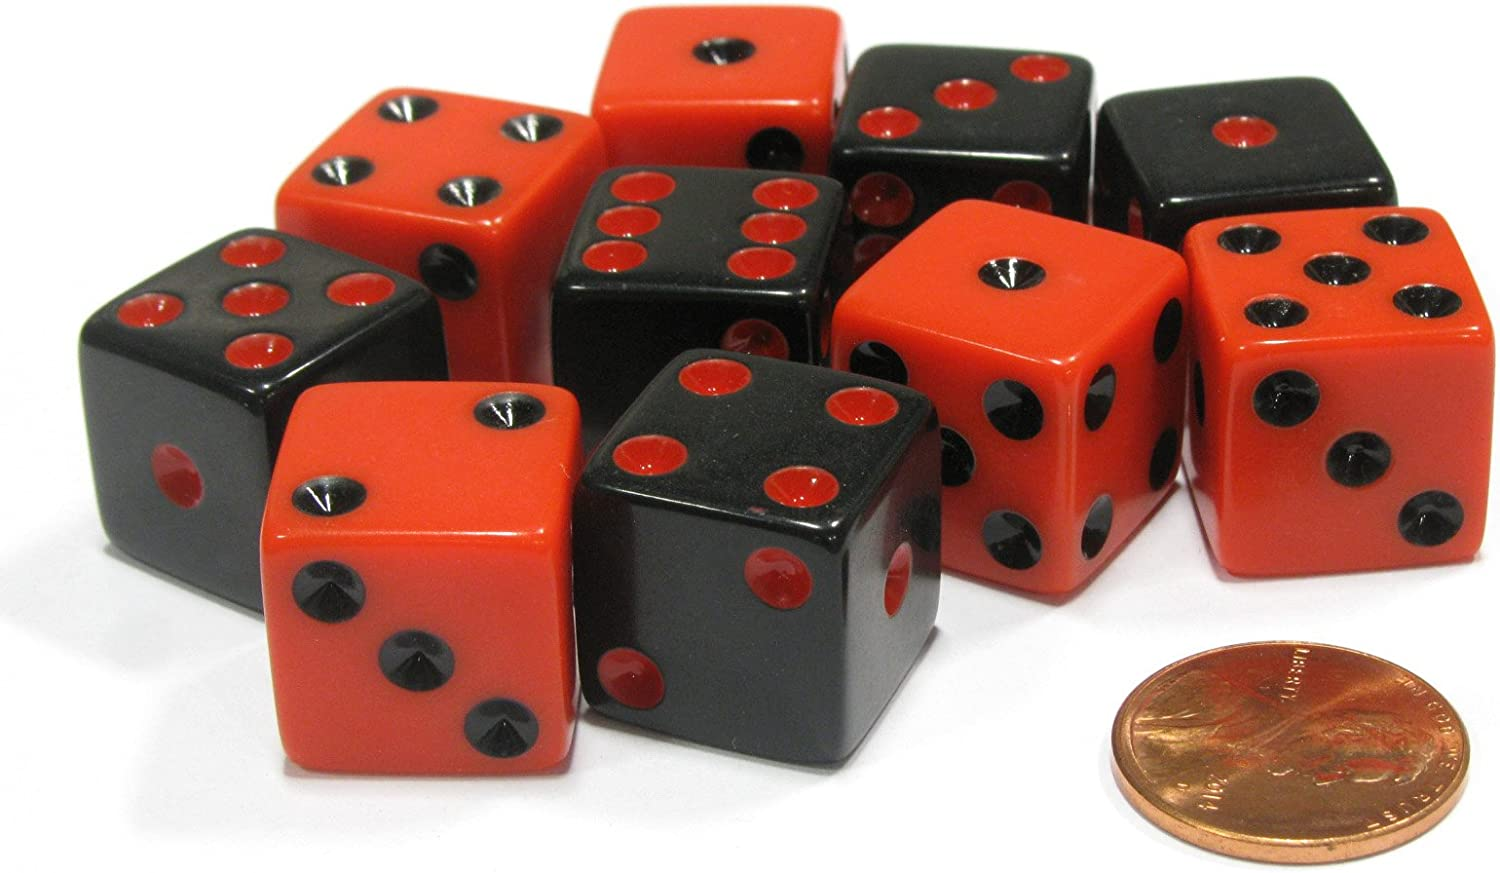 Black with Red Pip Die Set of 10 Six Sided Square Opaque 16mm D6 Dice